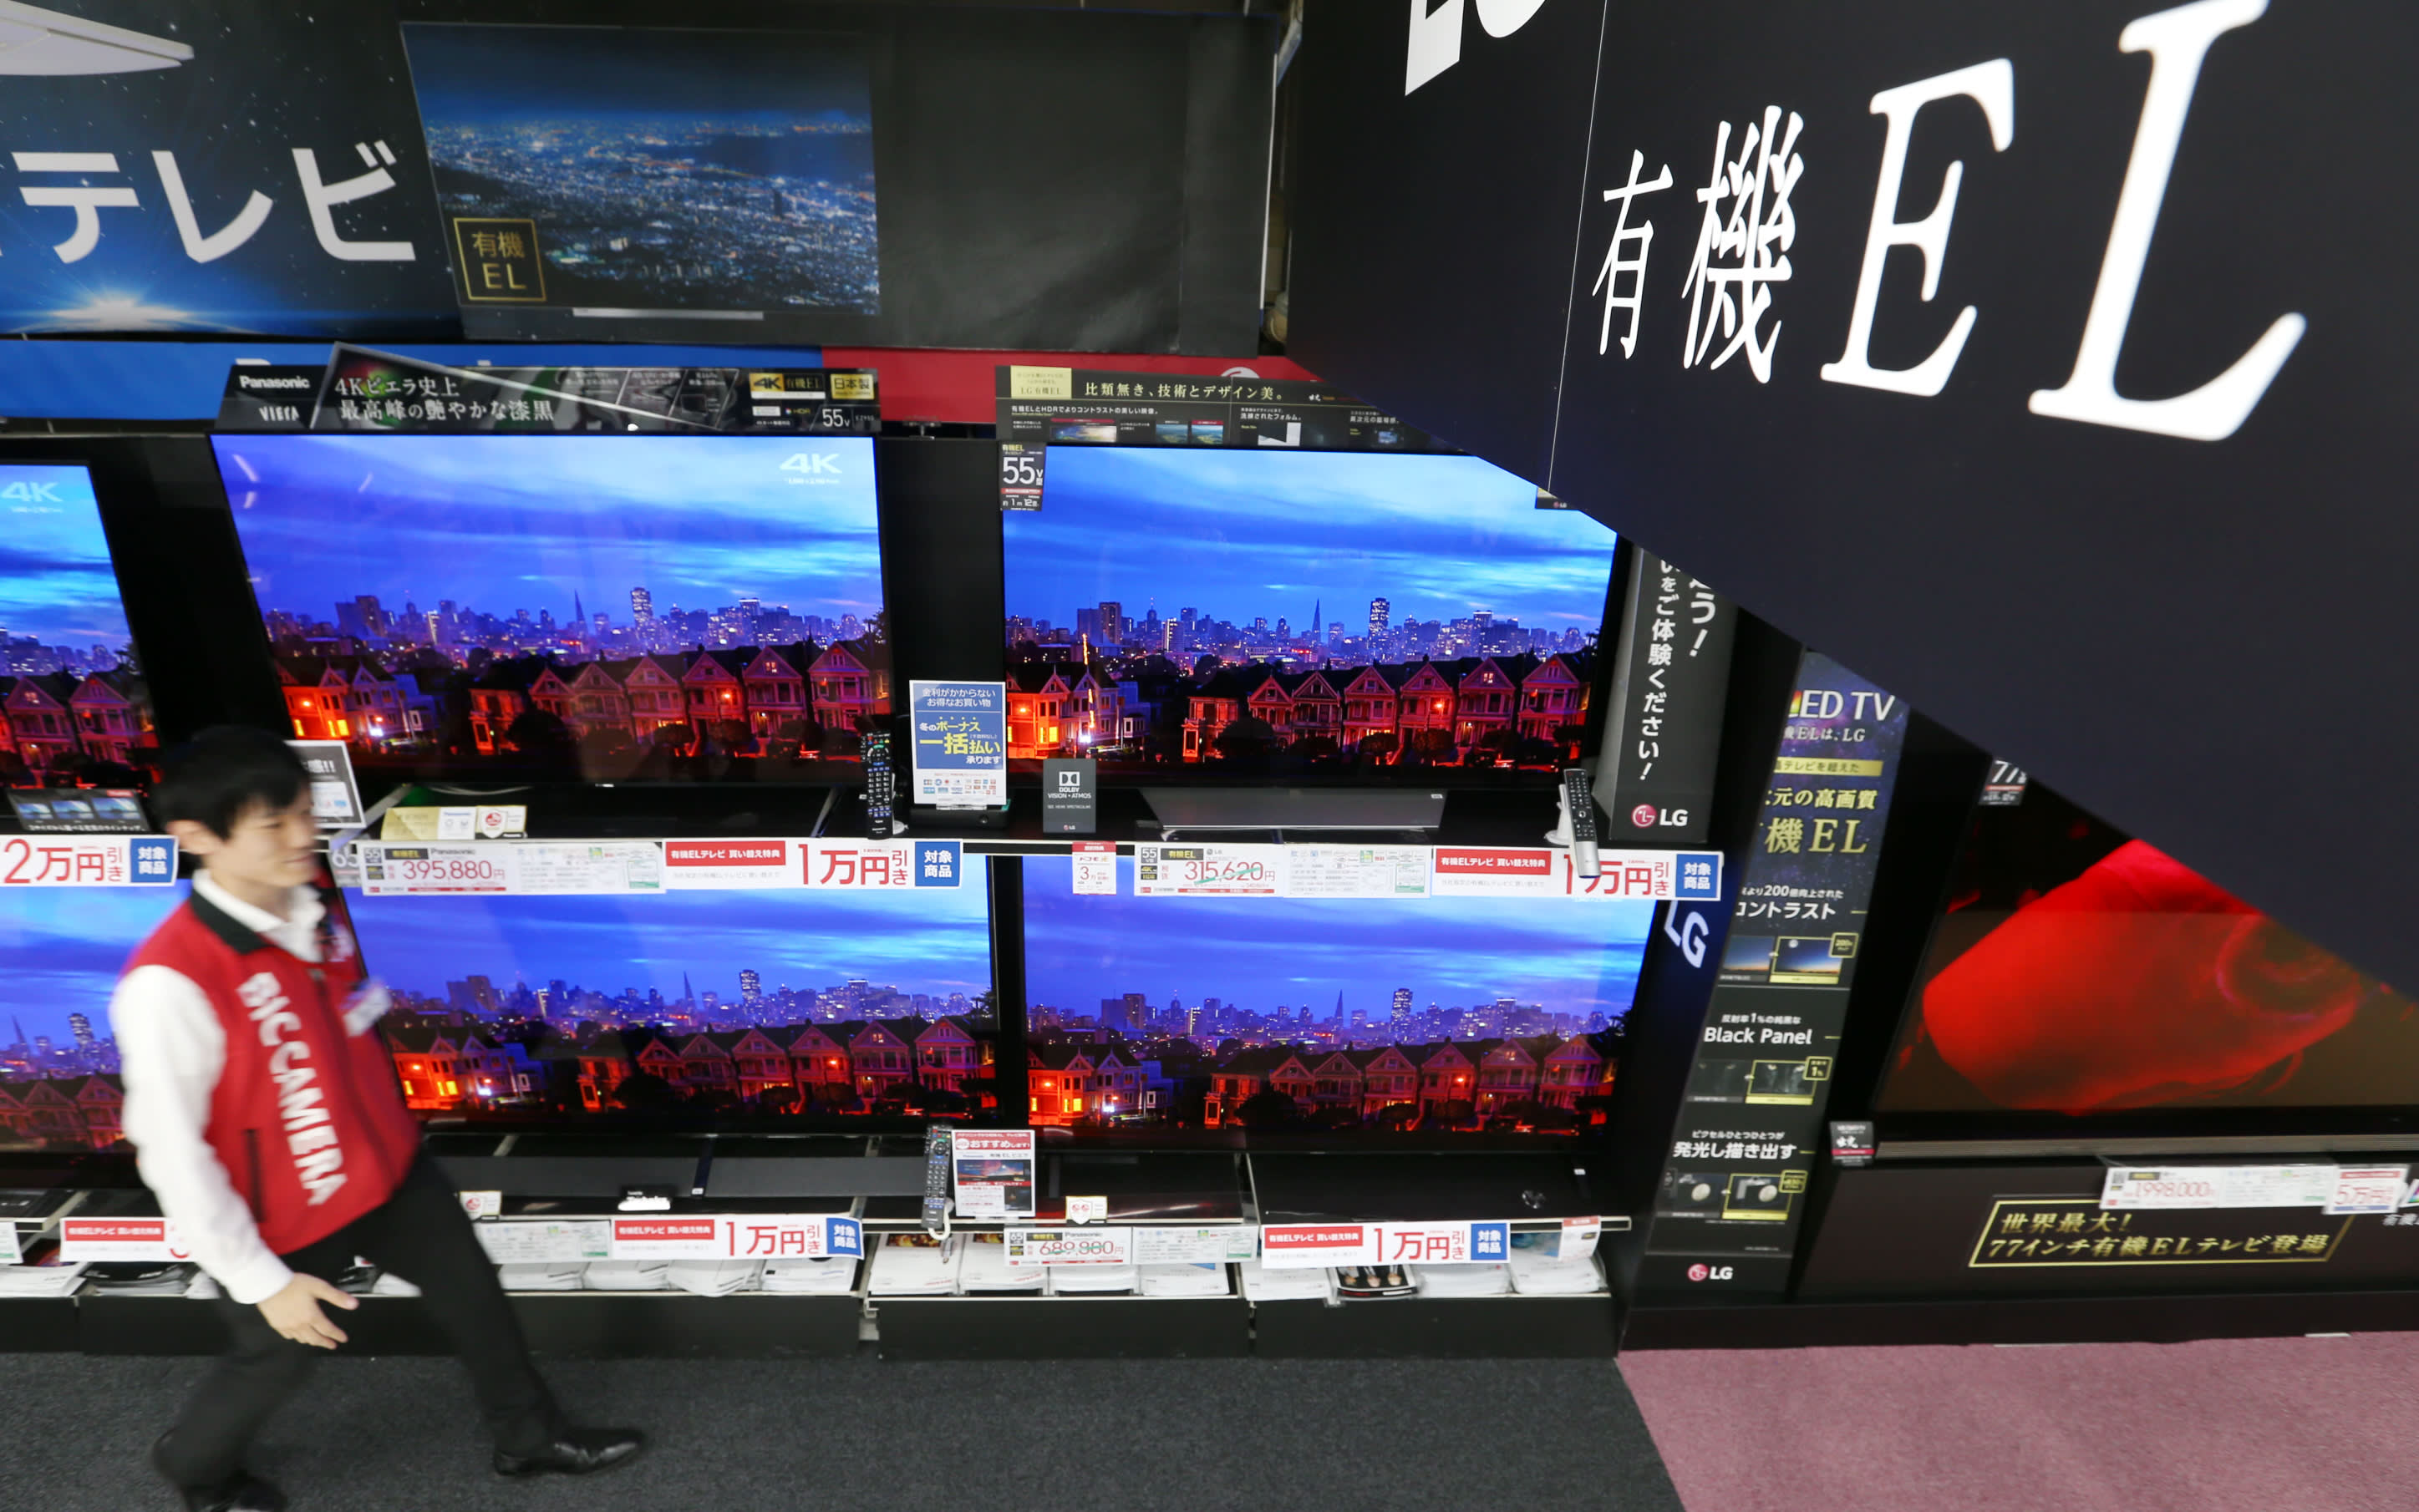 Japan manufacturers' OLED TV sales poised to top 1m in 2019 - Nikkei